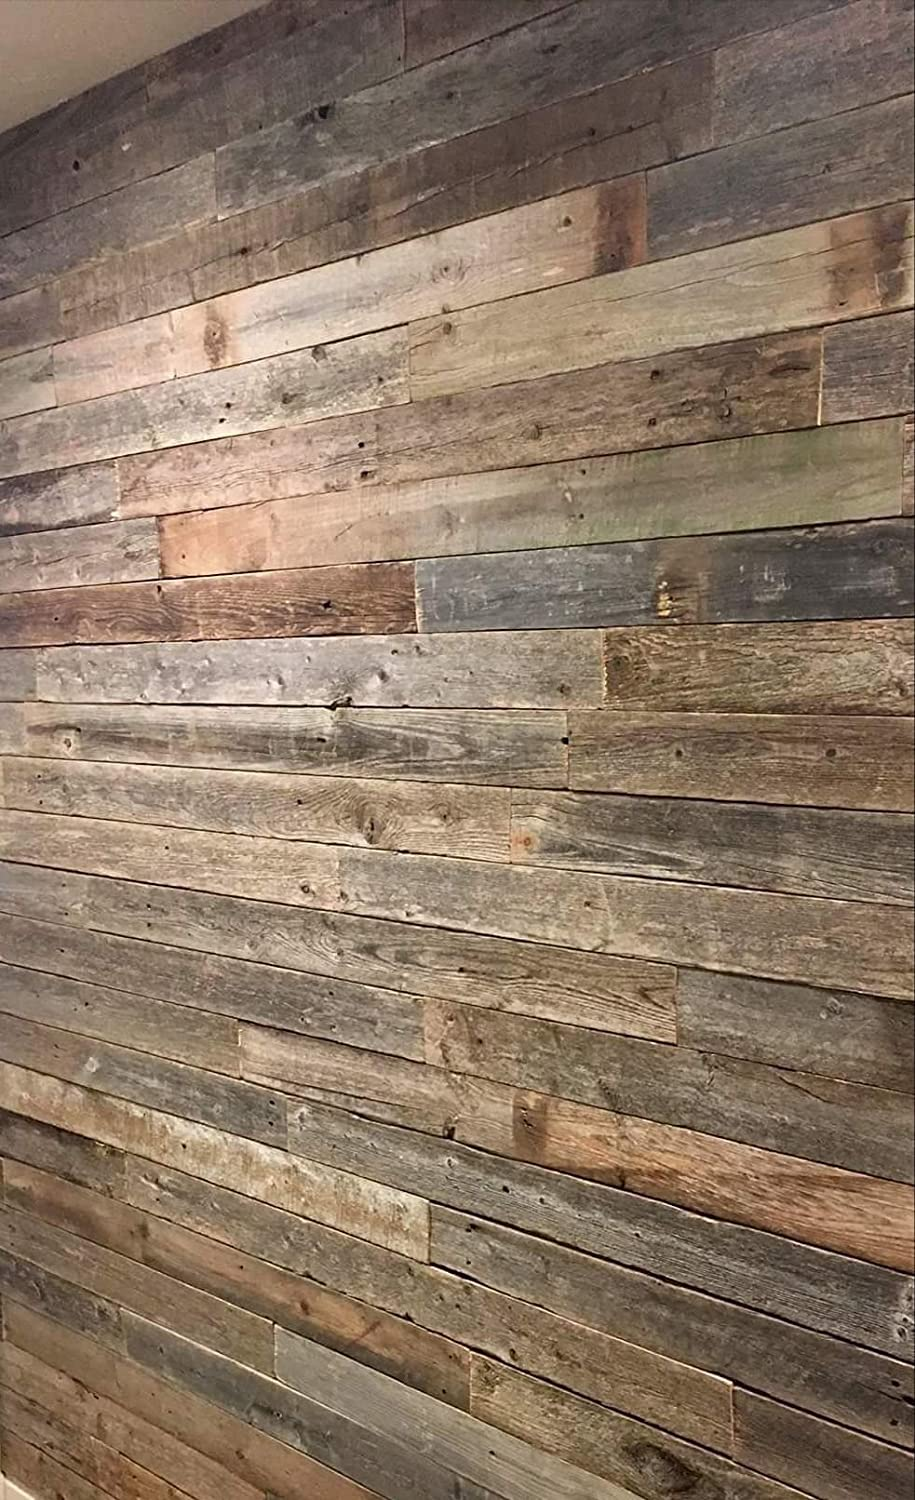 Real Wood! Reclaimed barn Wood Wall Paneling, Planks for Accent Walls (1 Square Foot Sample Pack) Rockin' Wood